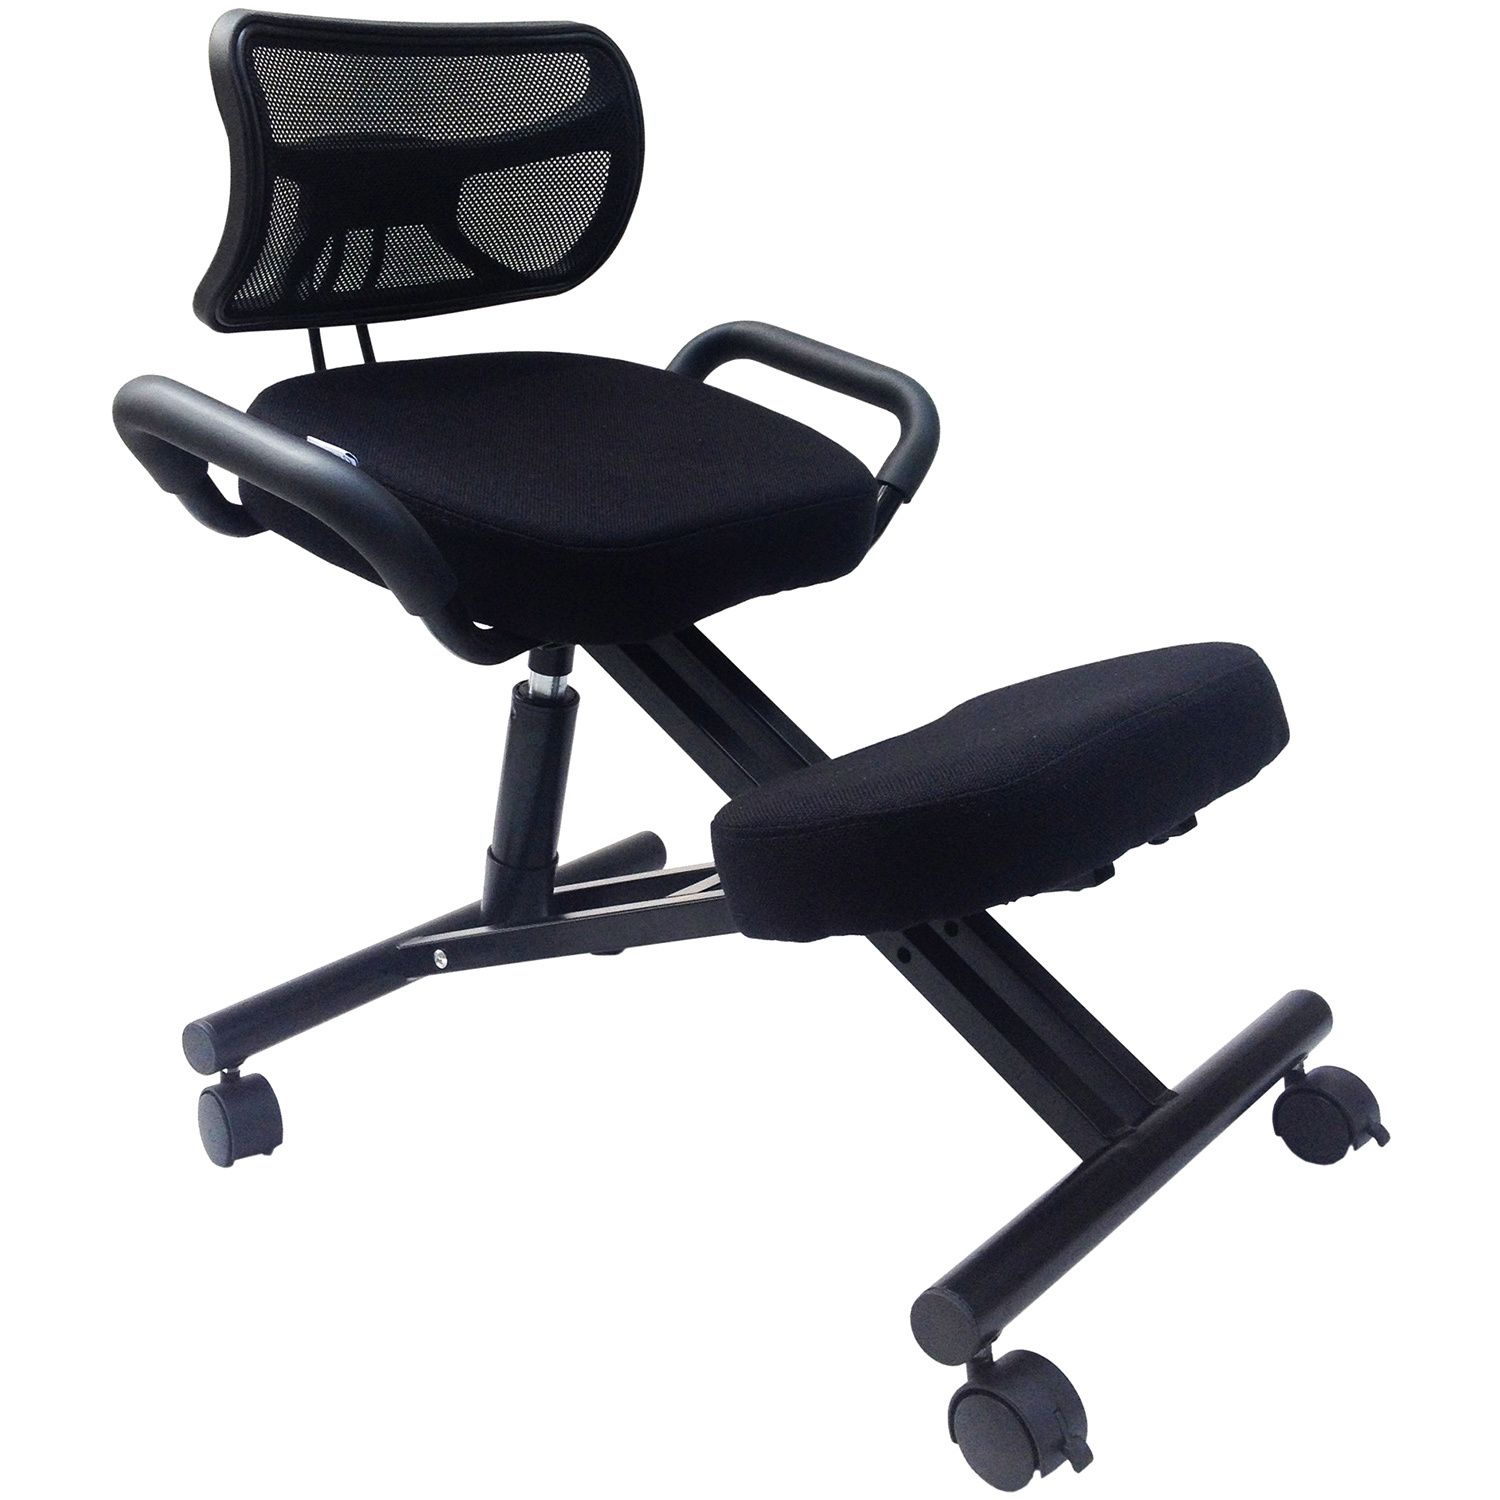 ergonomic posture kneeling chair gaming for ps4 sierra comfort sc 300 with back